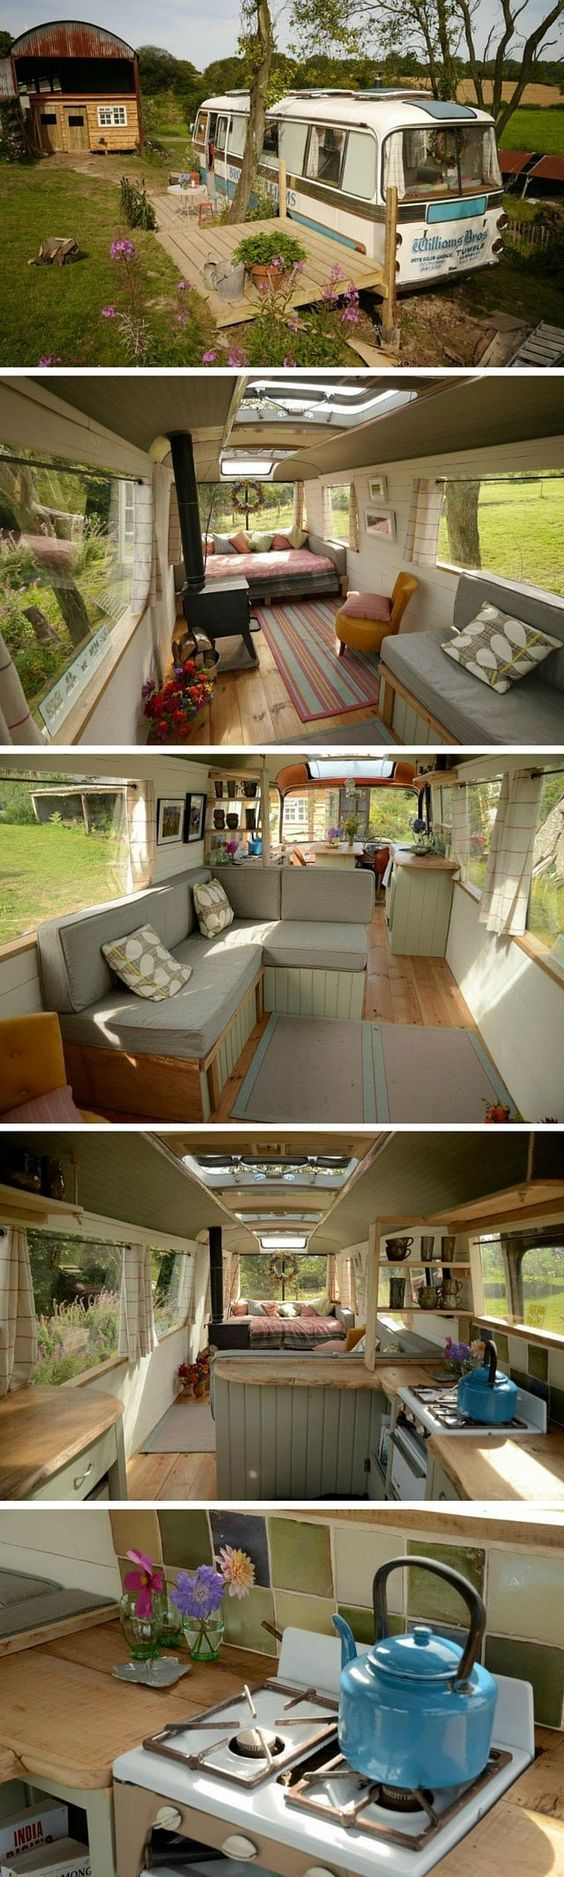 Breathtaking 105 Impressive Tiny Houses That Maximize Function and Style https://decoratio.co/2017/03/105-impressive-tiny-houses-maximize-function-style/